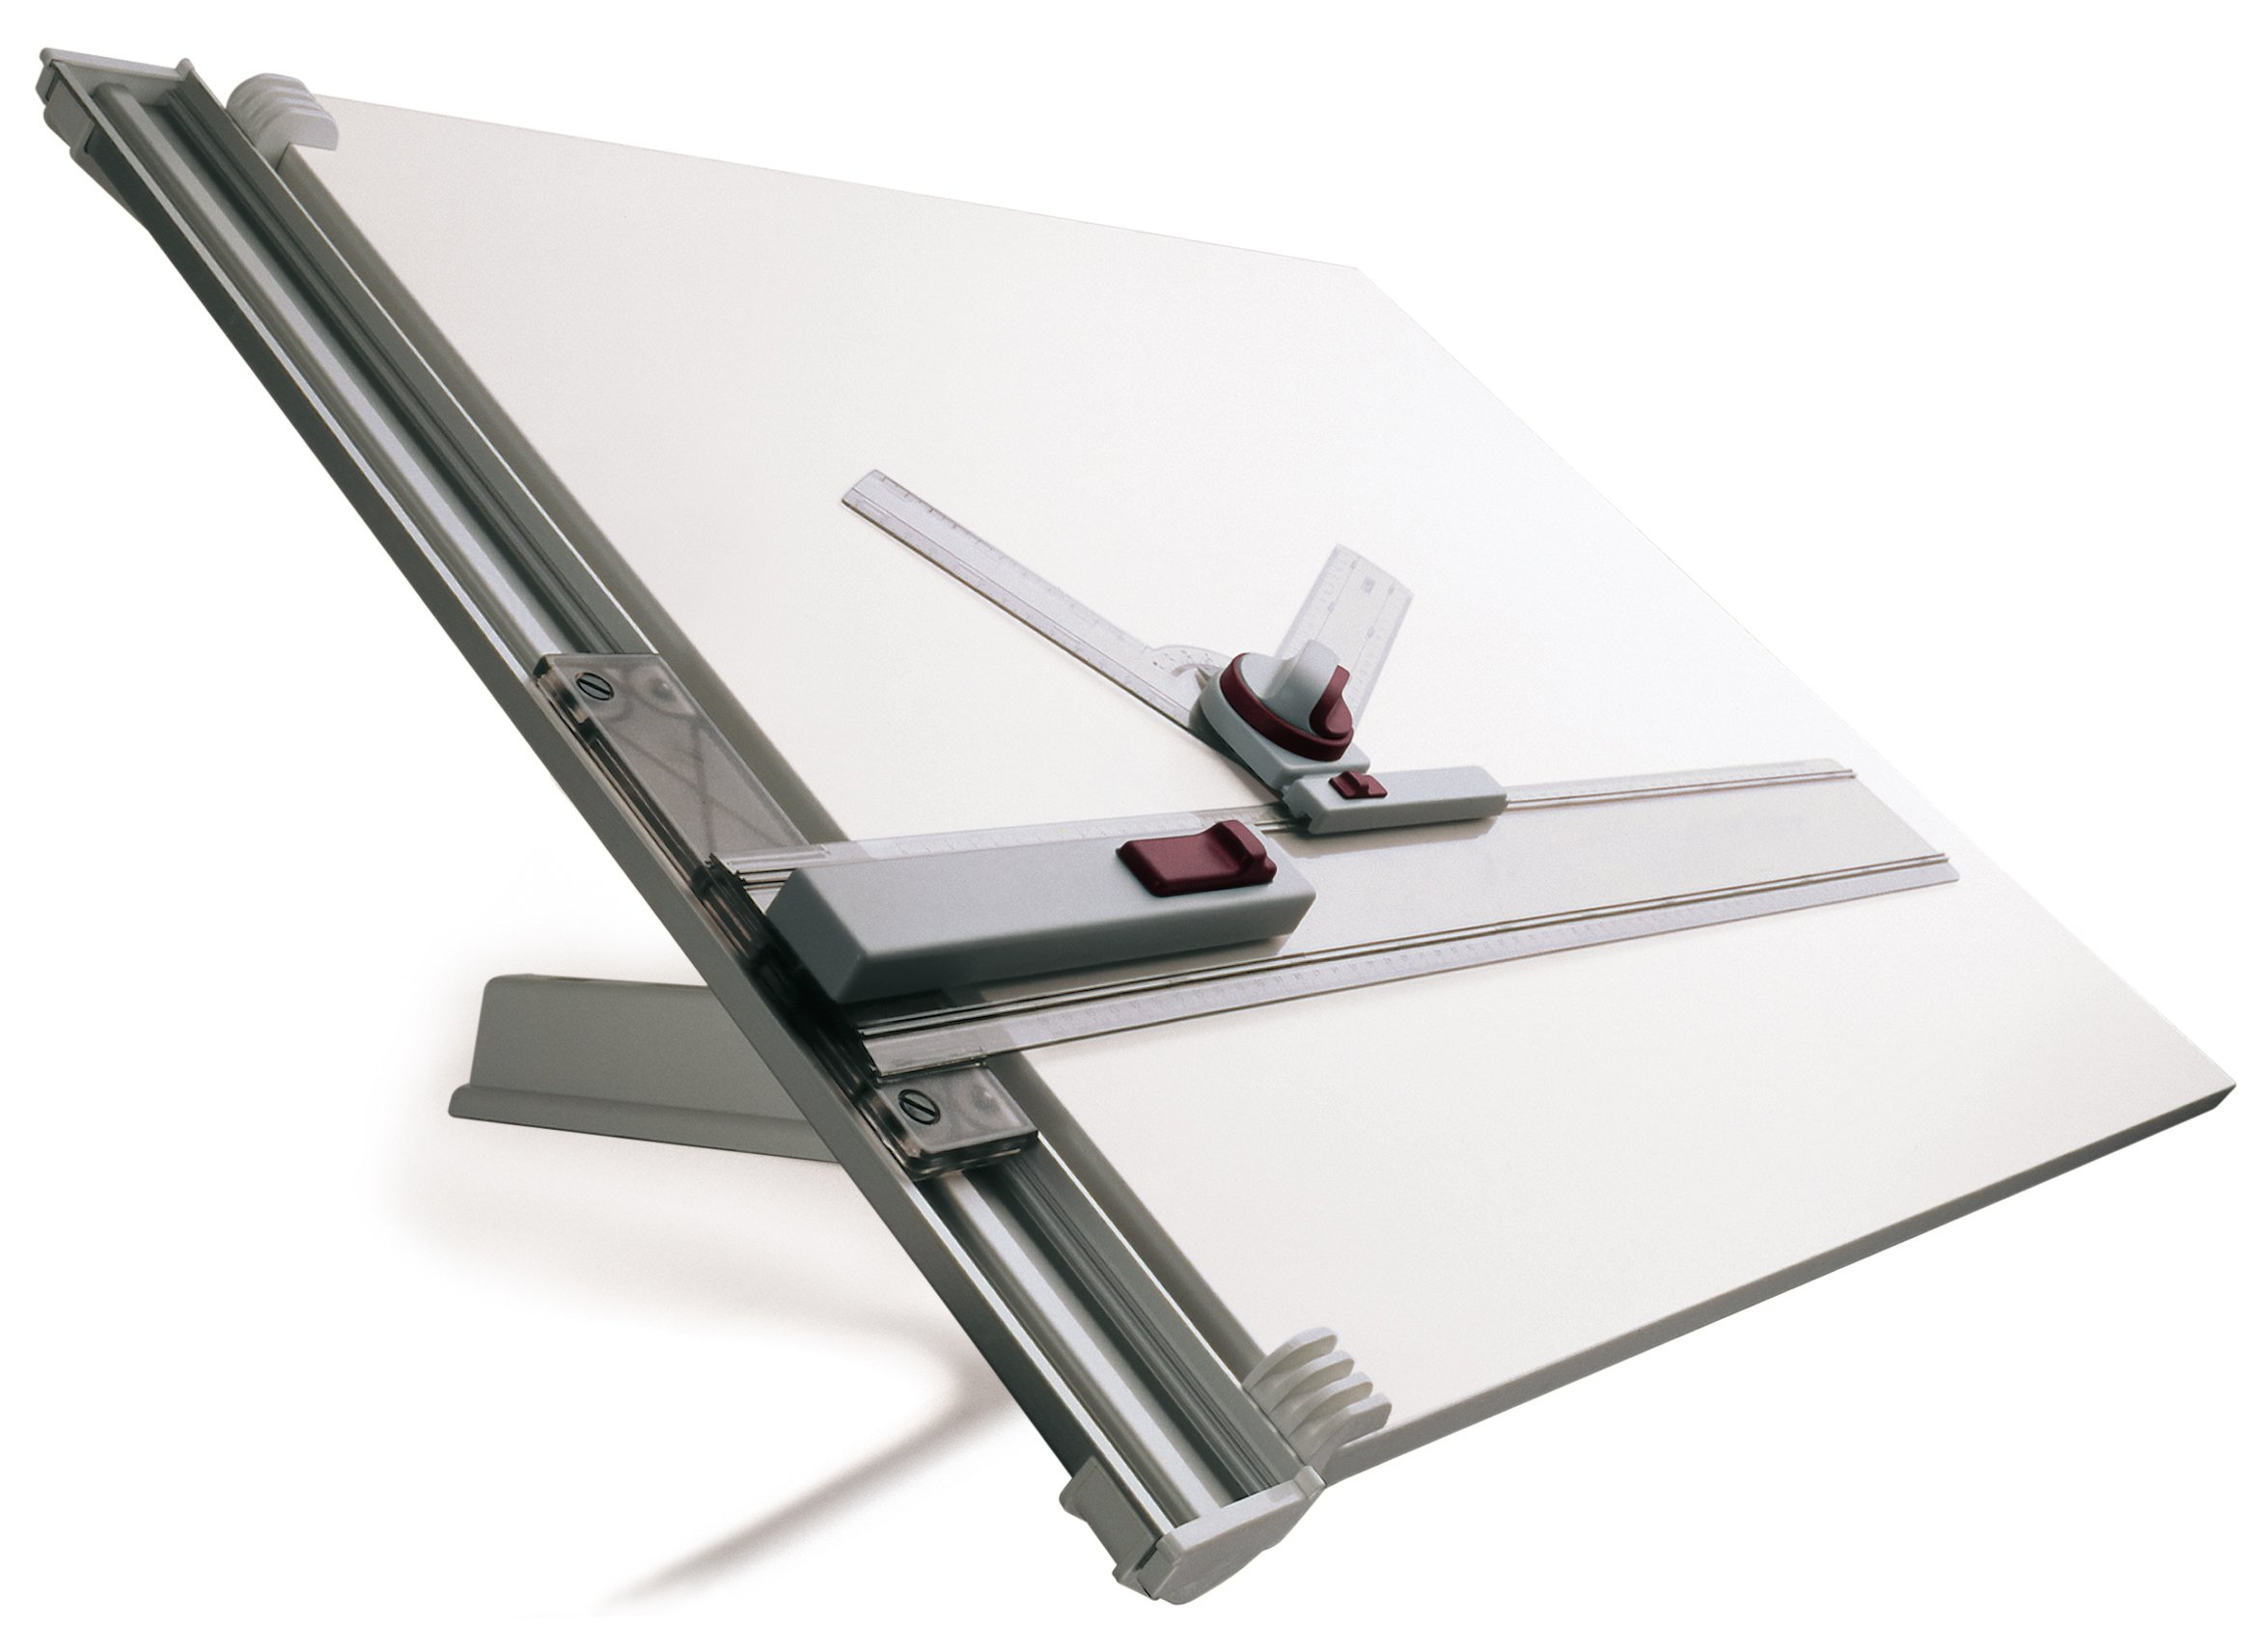 Rotring Designer Drawing Board Folds Flat 700x600mm Ref S0213920 by Rotring